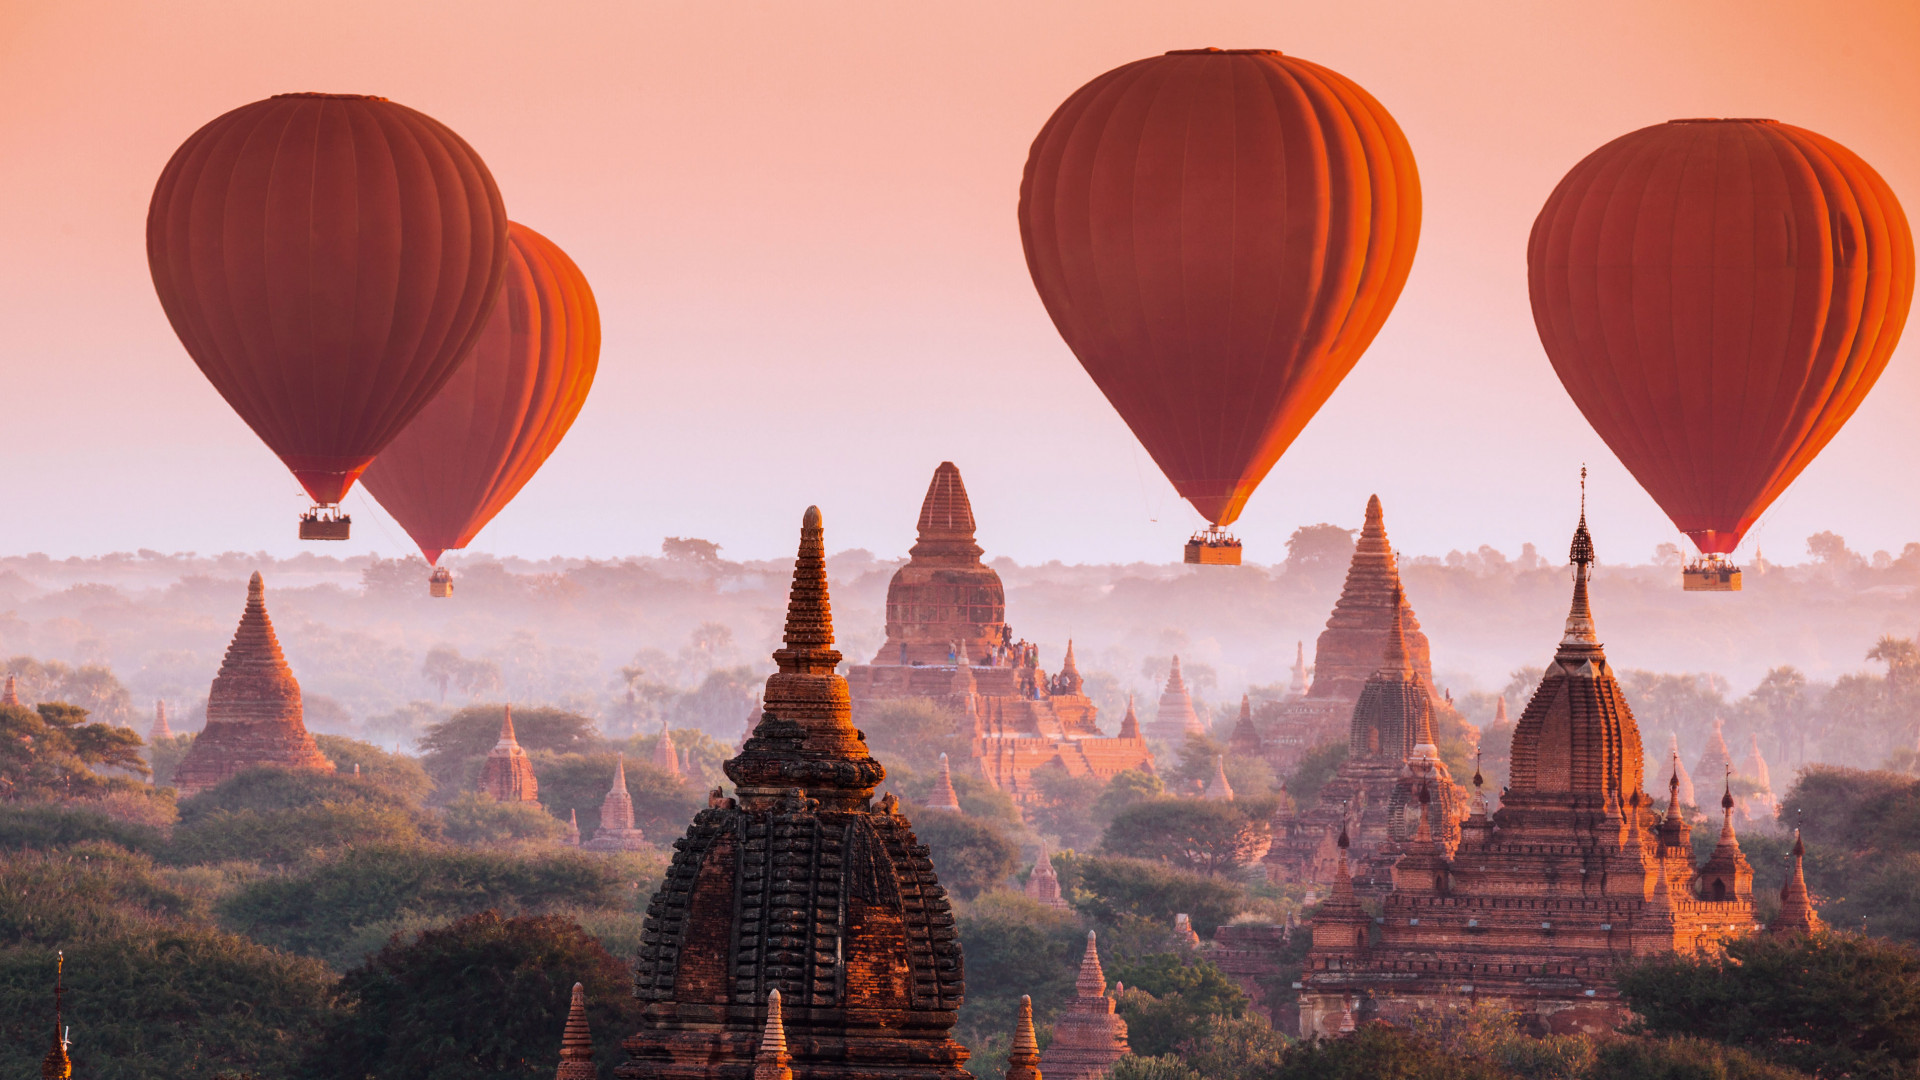 Red air balloons in Myanmar